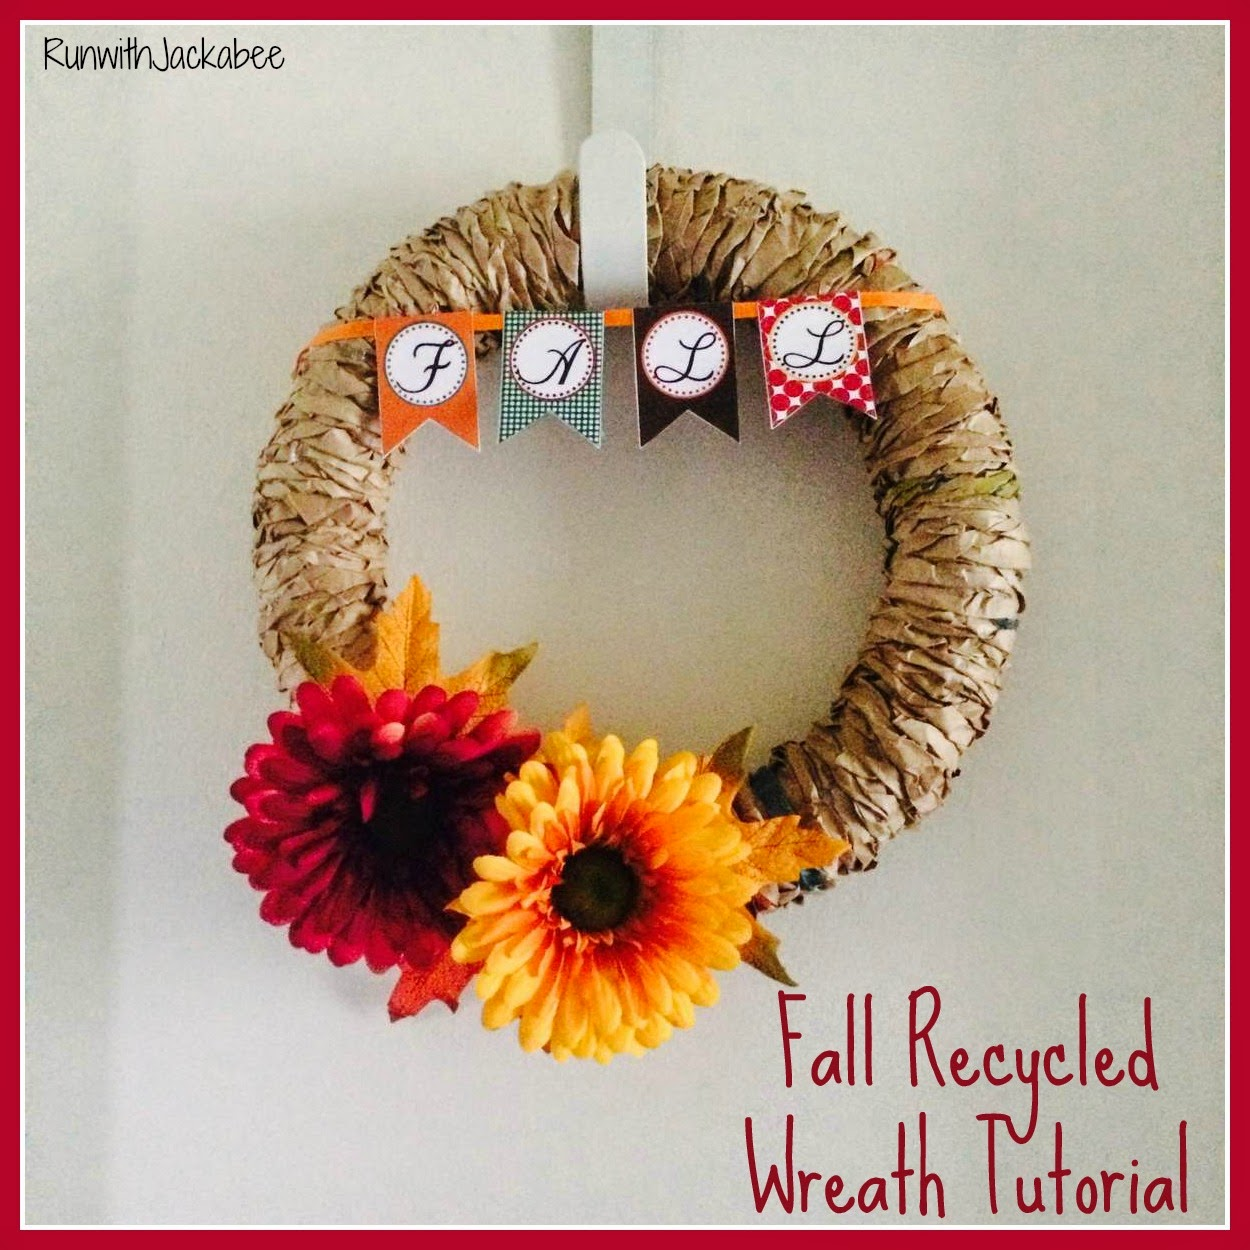 Runwithjackabee Fall Recycled Wreath Tutorial